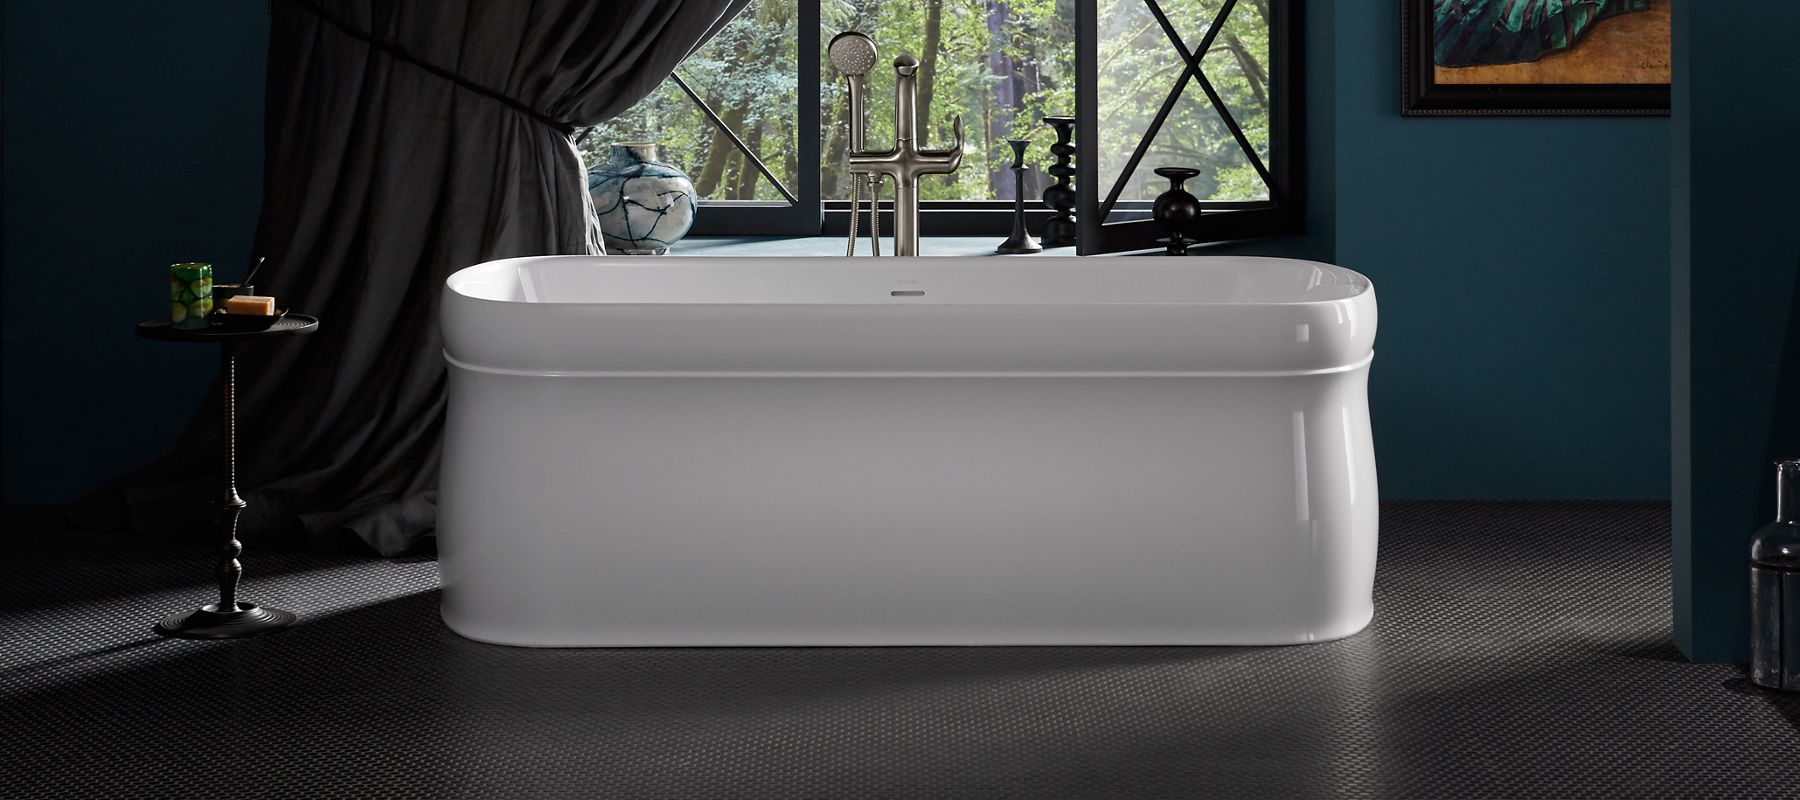 tub baths b glass en free by product mini from bath design architonic bianca standing